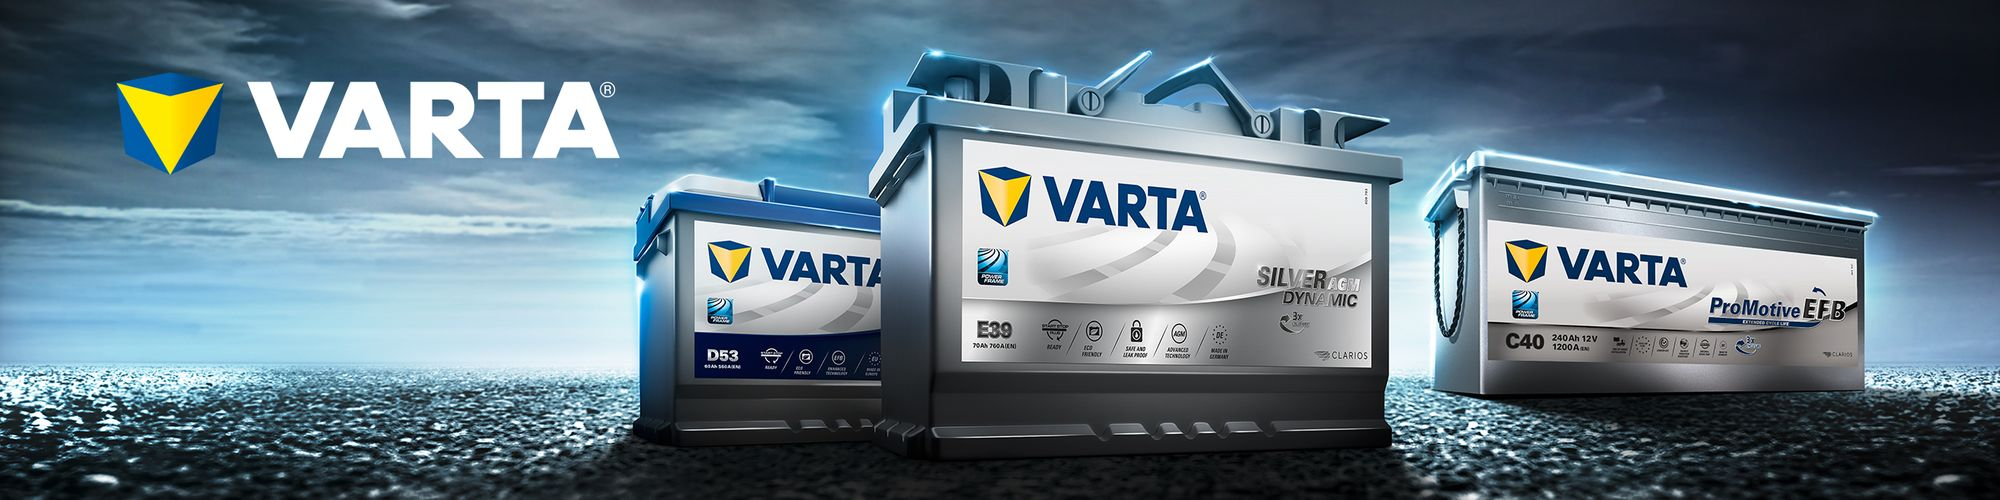 VARTA Battery Specialists